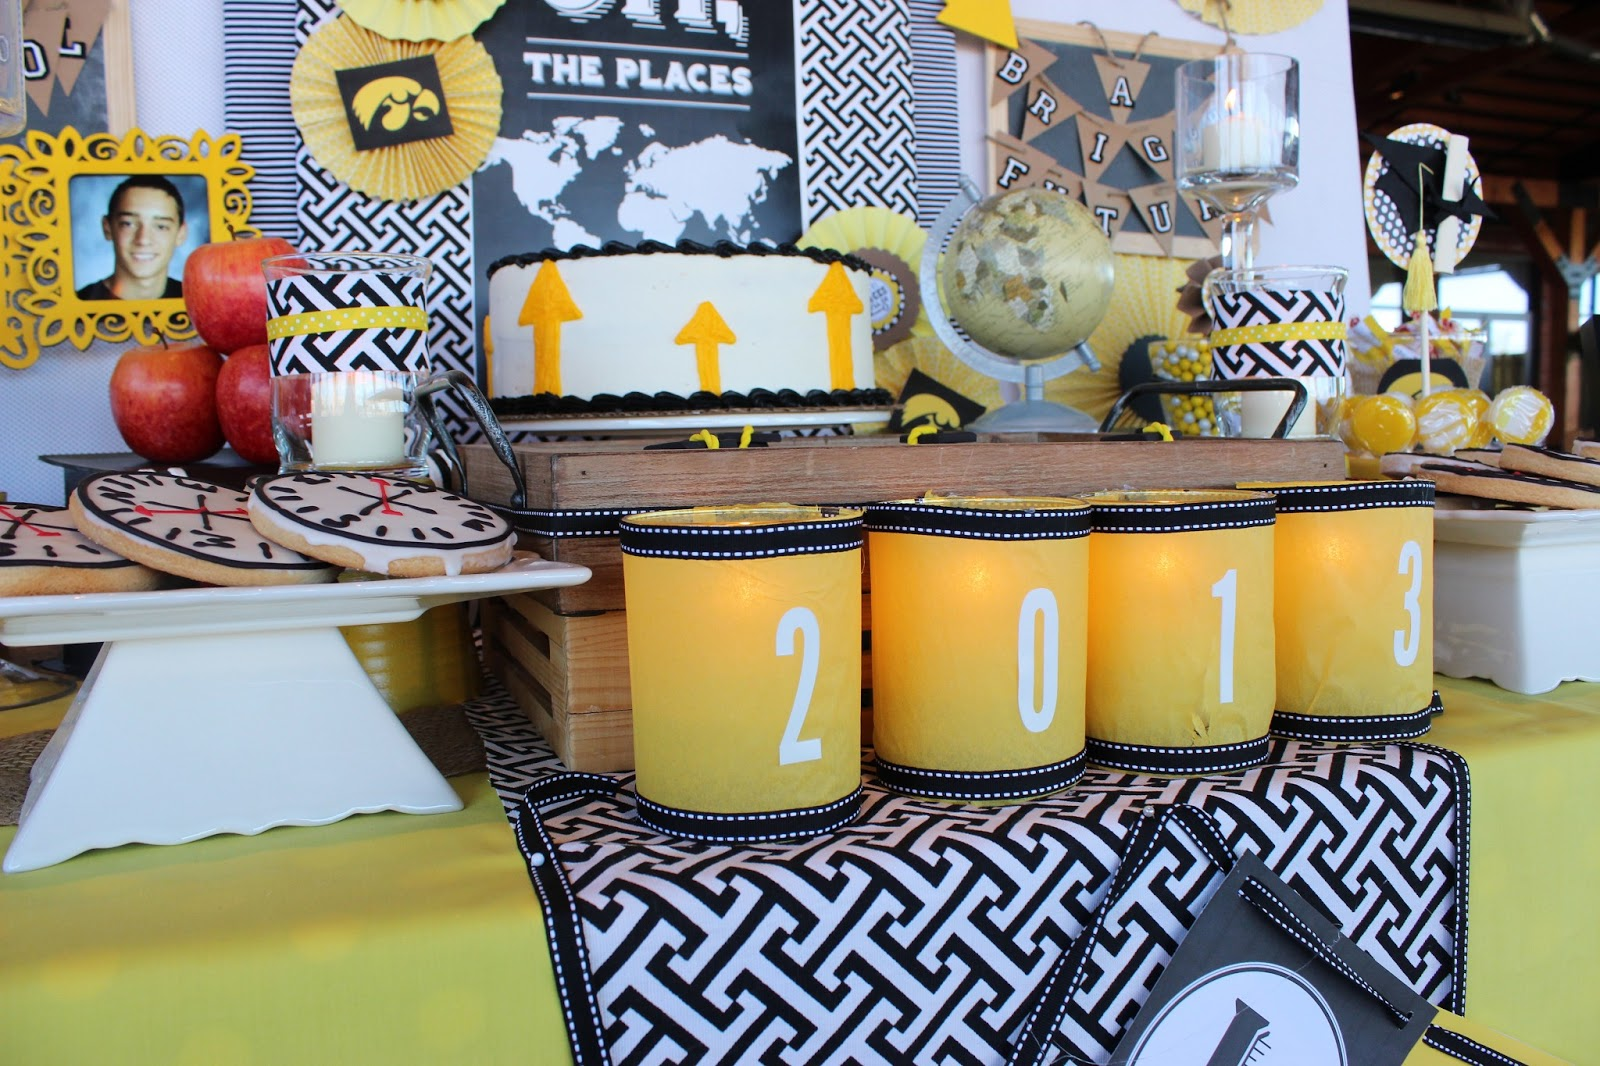 Charming Touch Parties: Oh The Places He'll Go